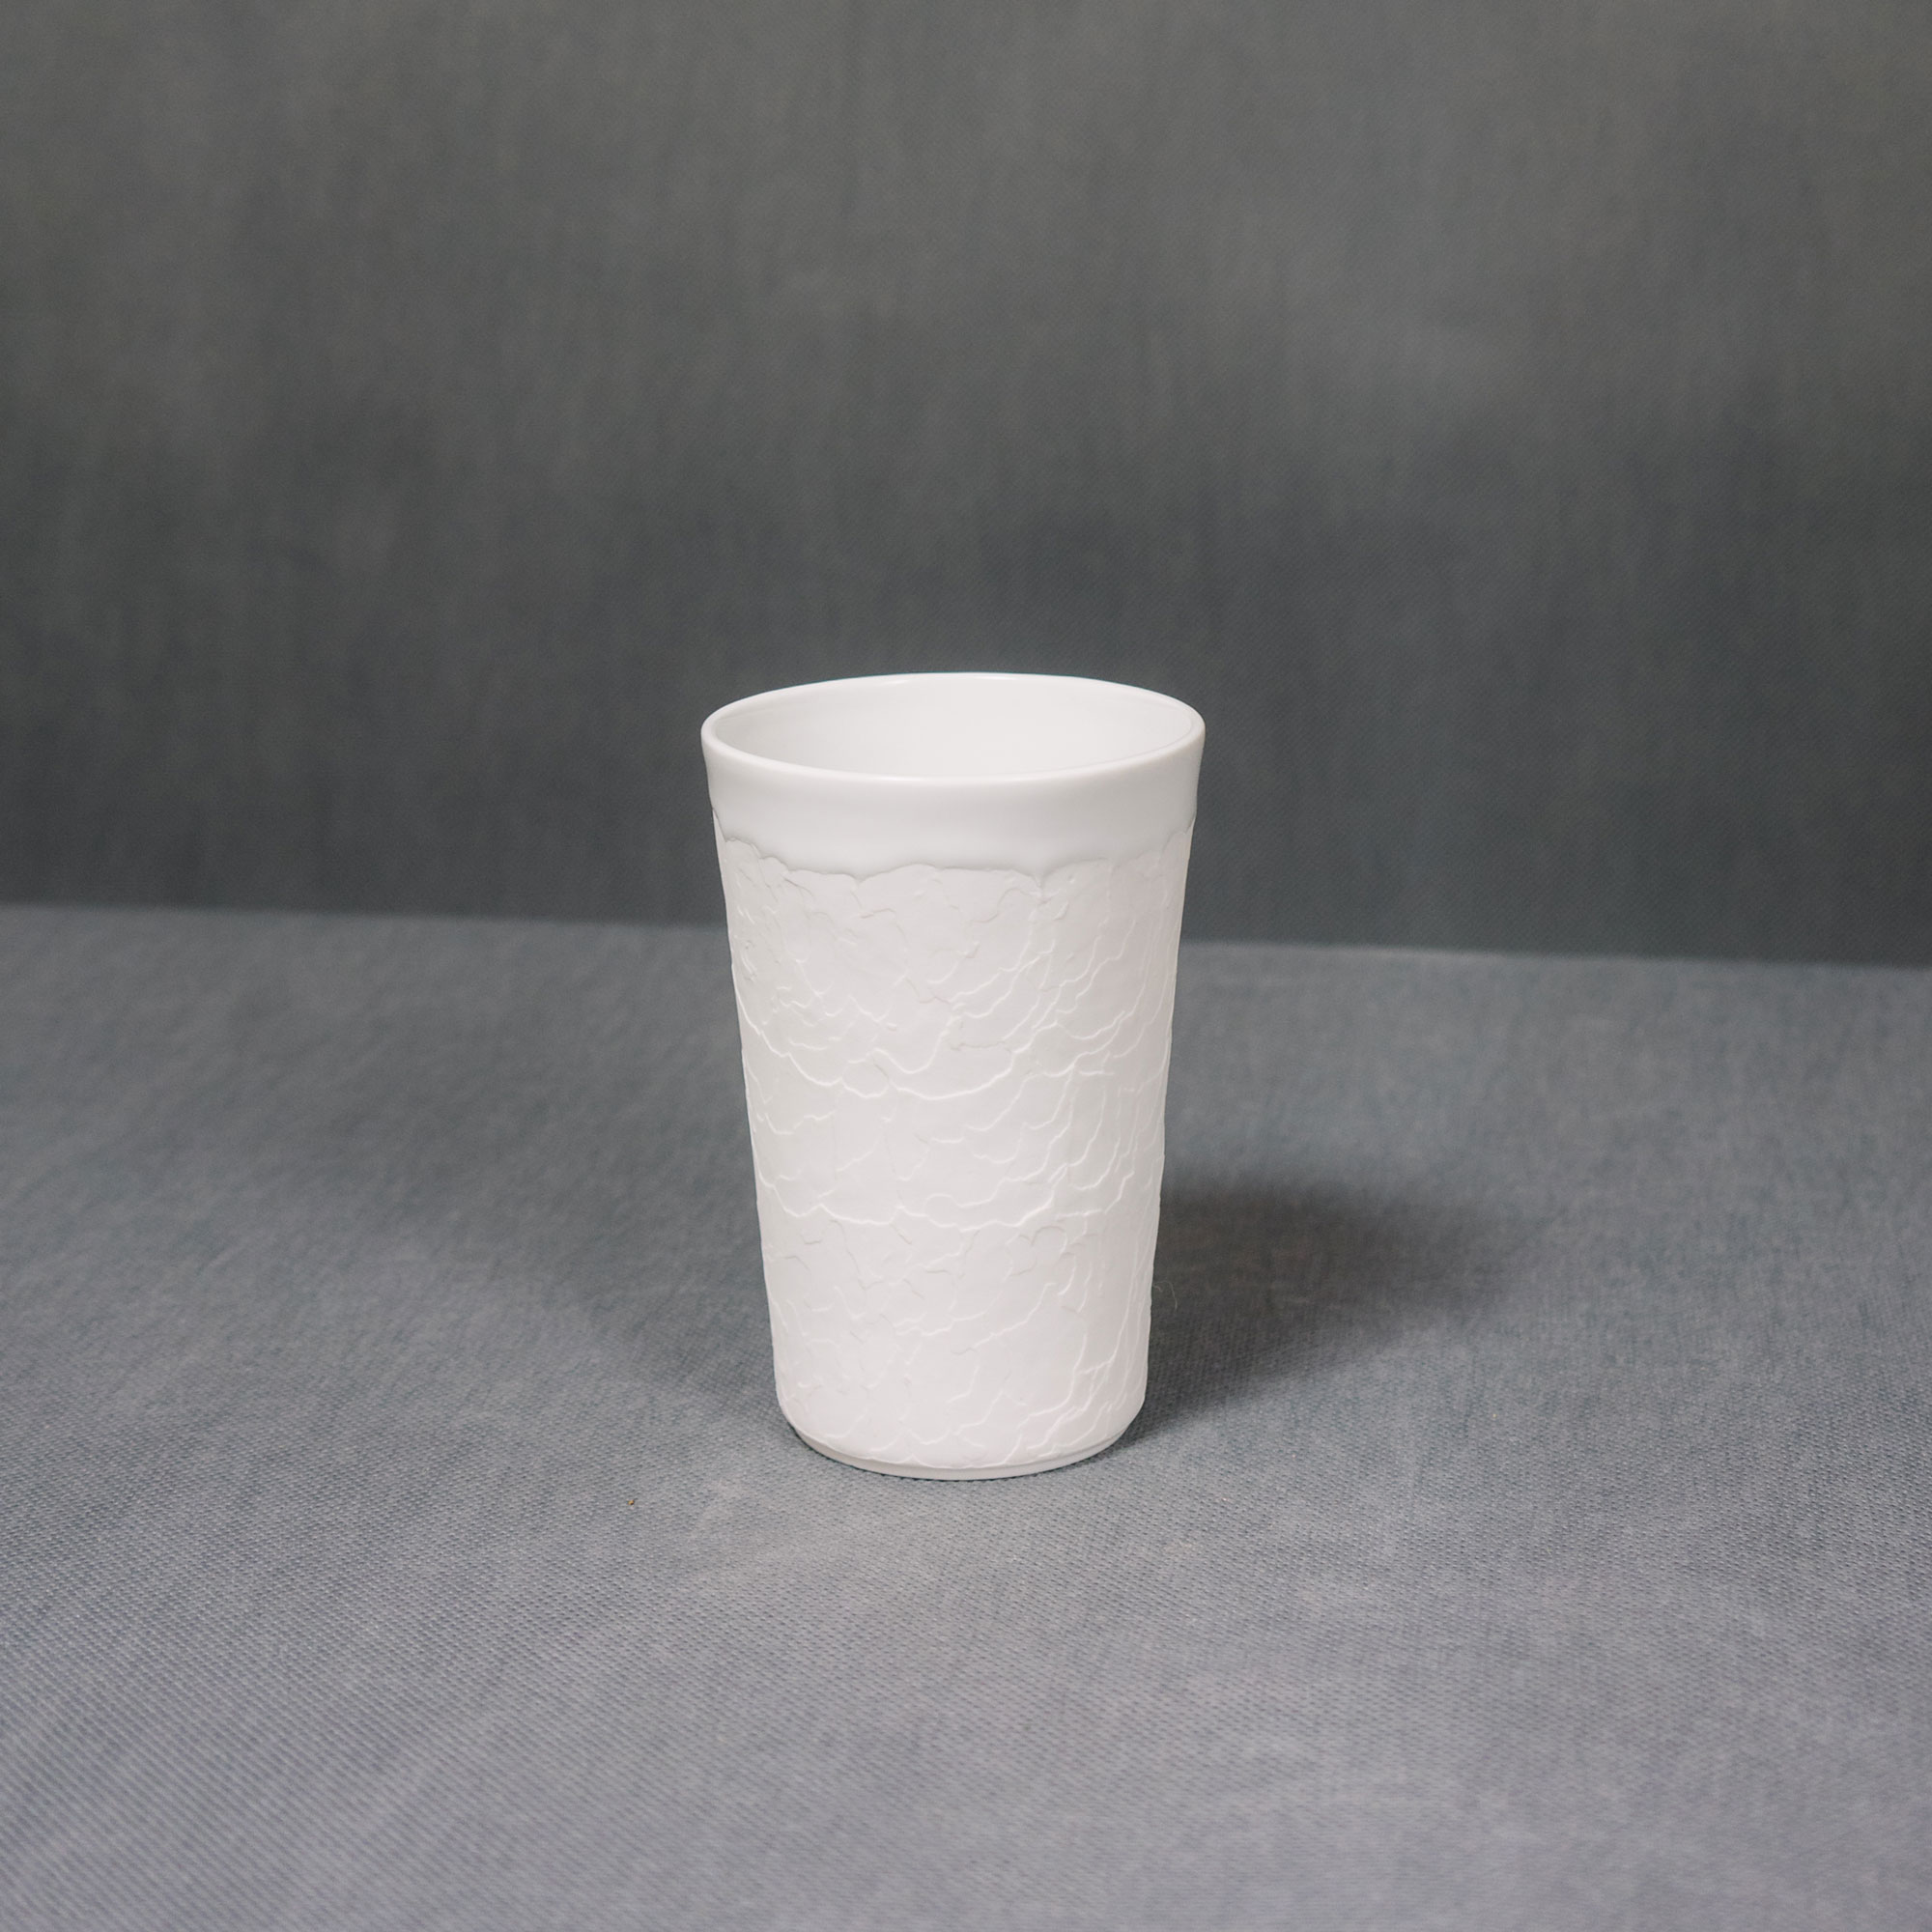 White ceramic structure cup by Nalejto